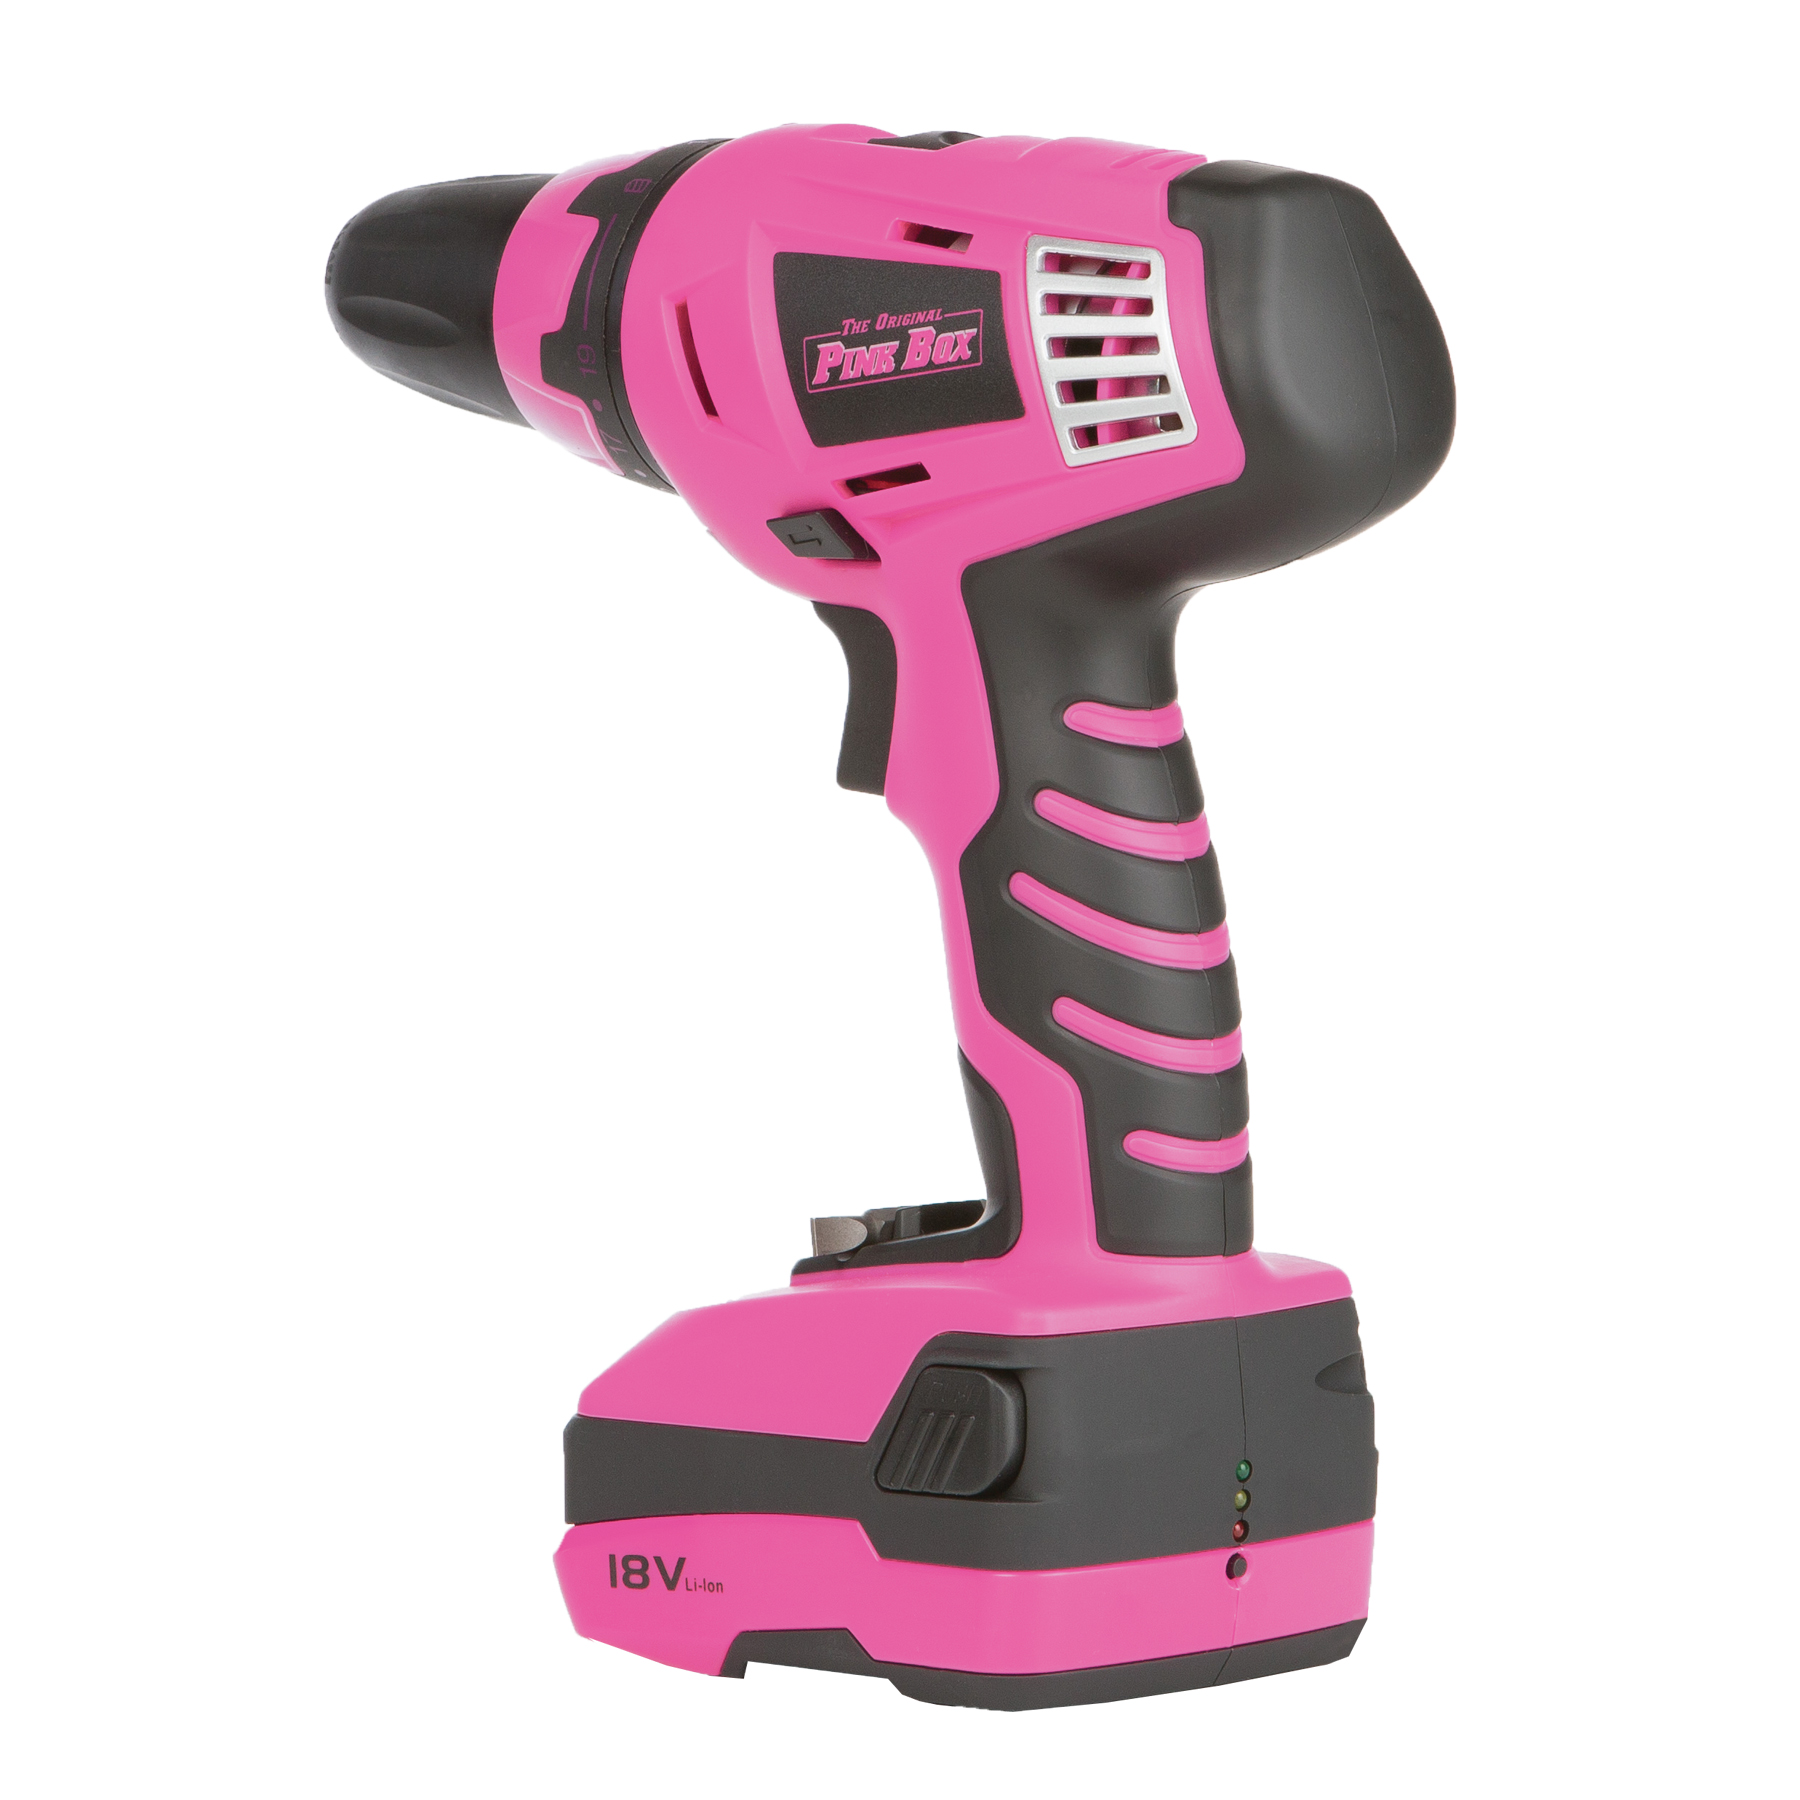 The Original Pink Box 18-Volt Lithium Ion Rechargeable Cordless Pink Drill